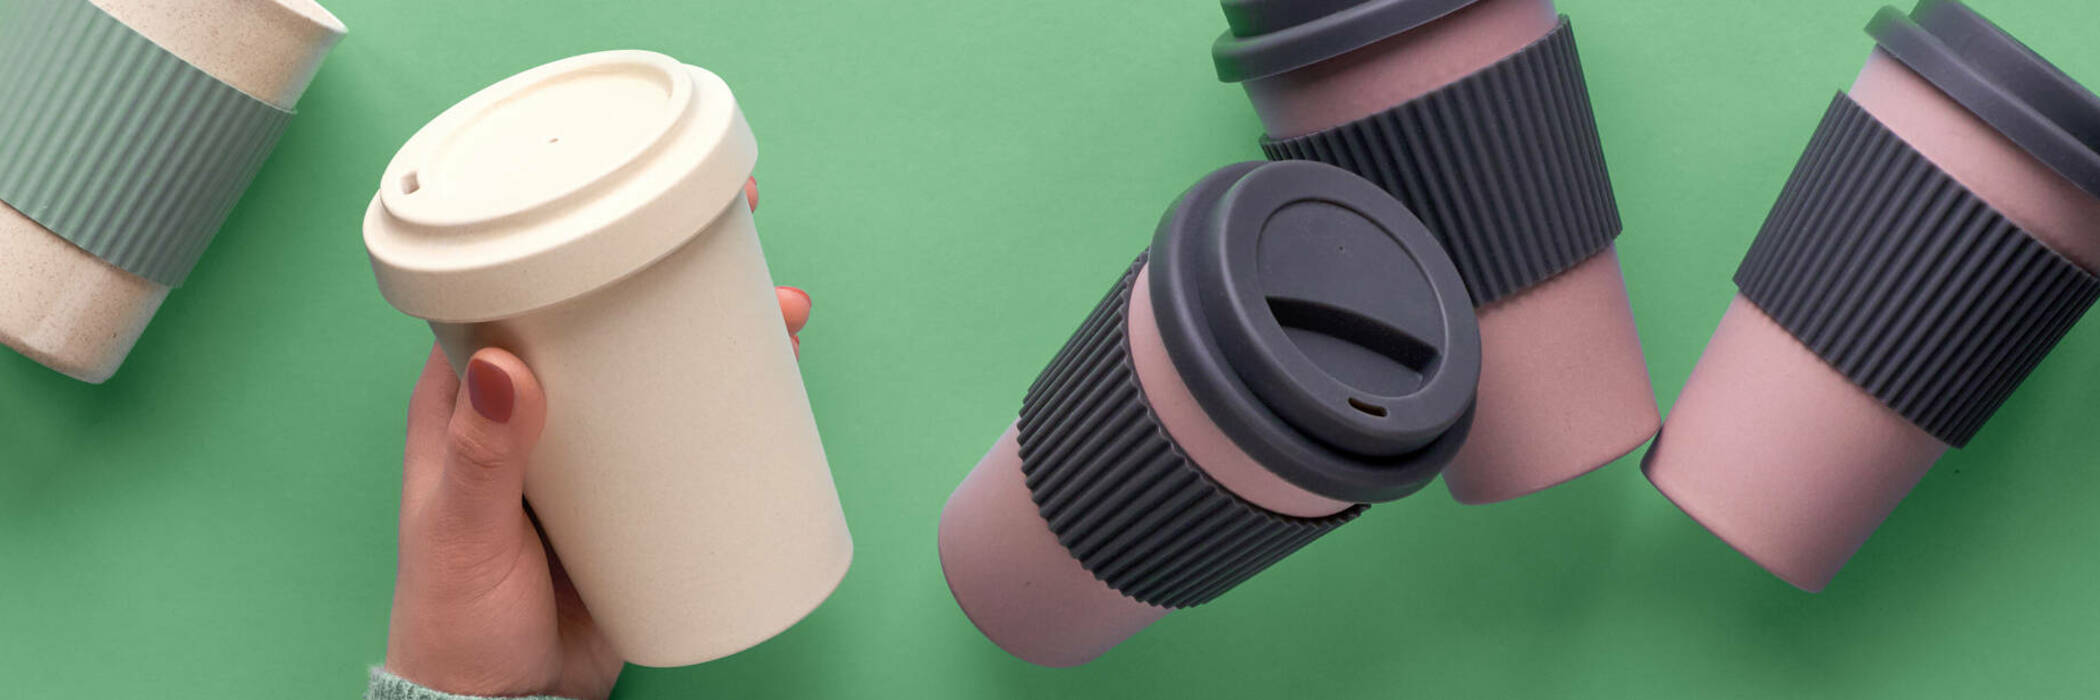 Reusable coffee cups on green background